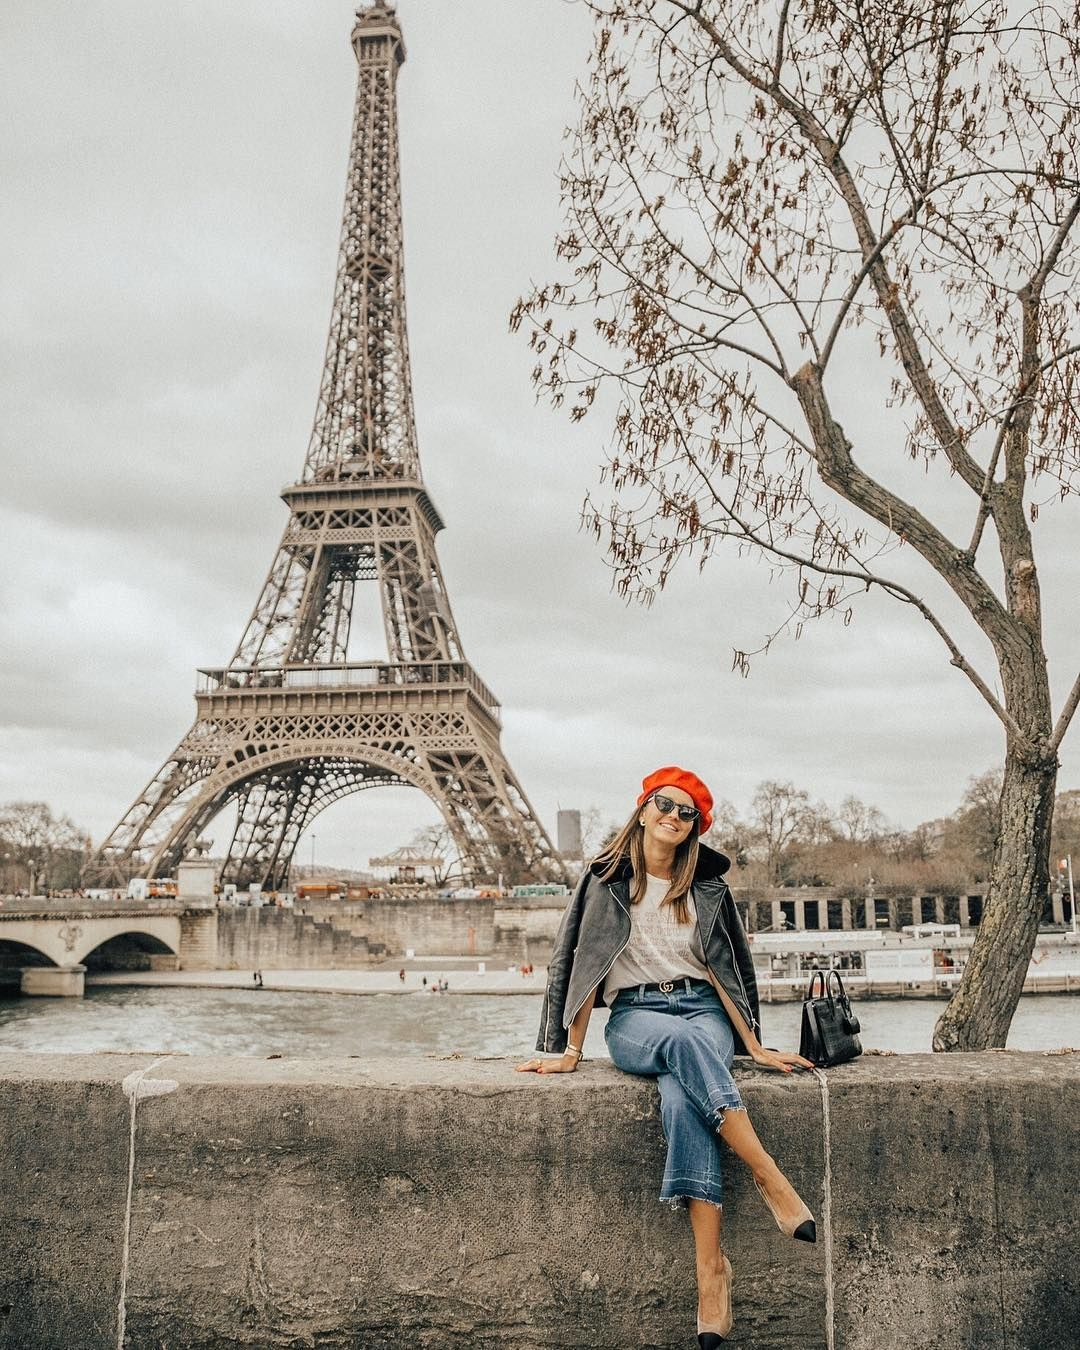 """Alexandra Pereira on Instagram: """"Switched the glittery skyscrapers of Dubai for the good ole' Eiffel Tower! So excited to be back in Paris even though it's going to be for…"""""""